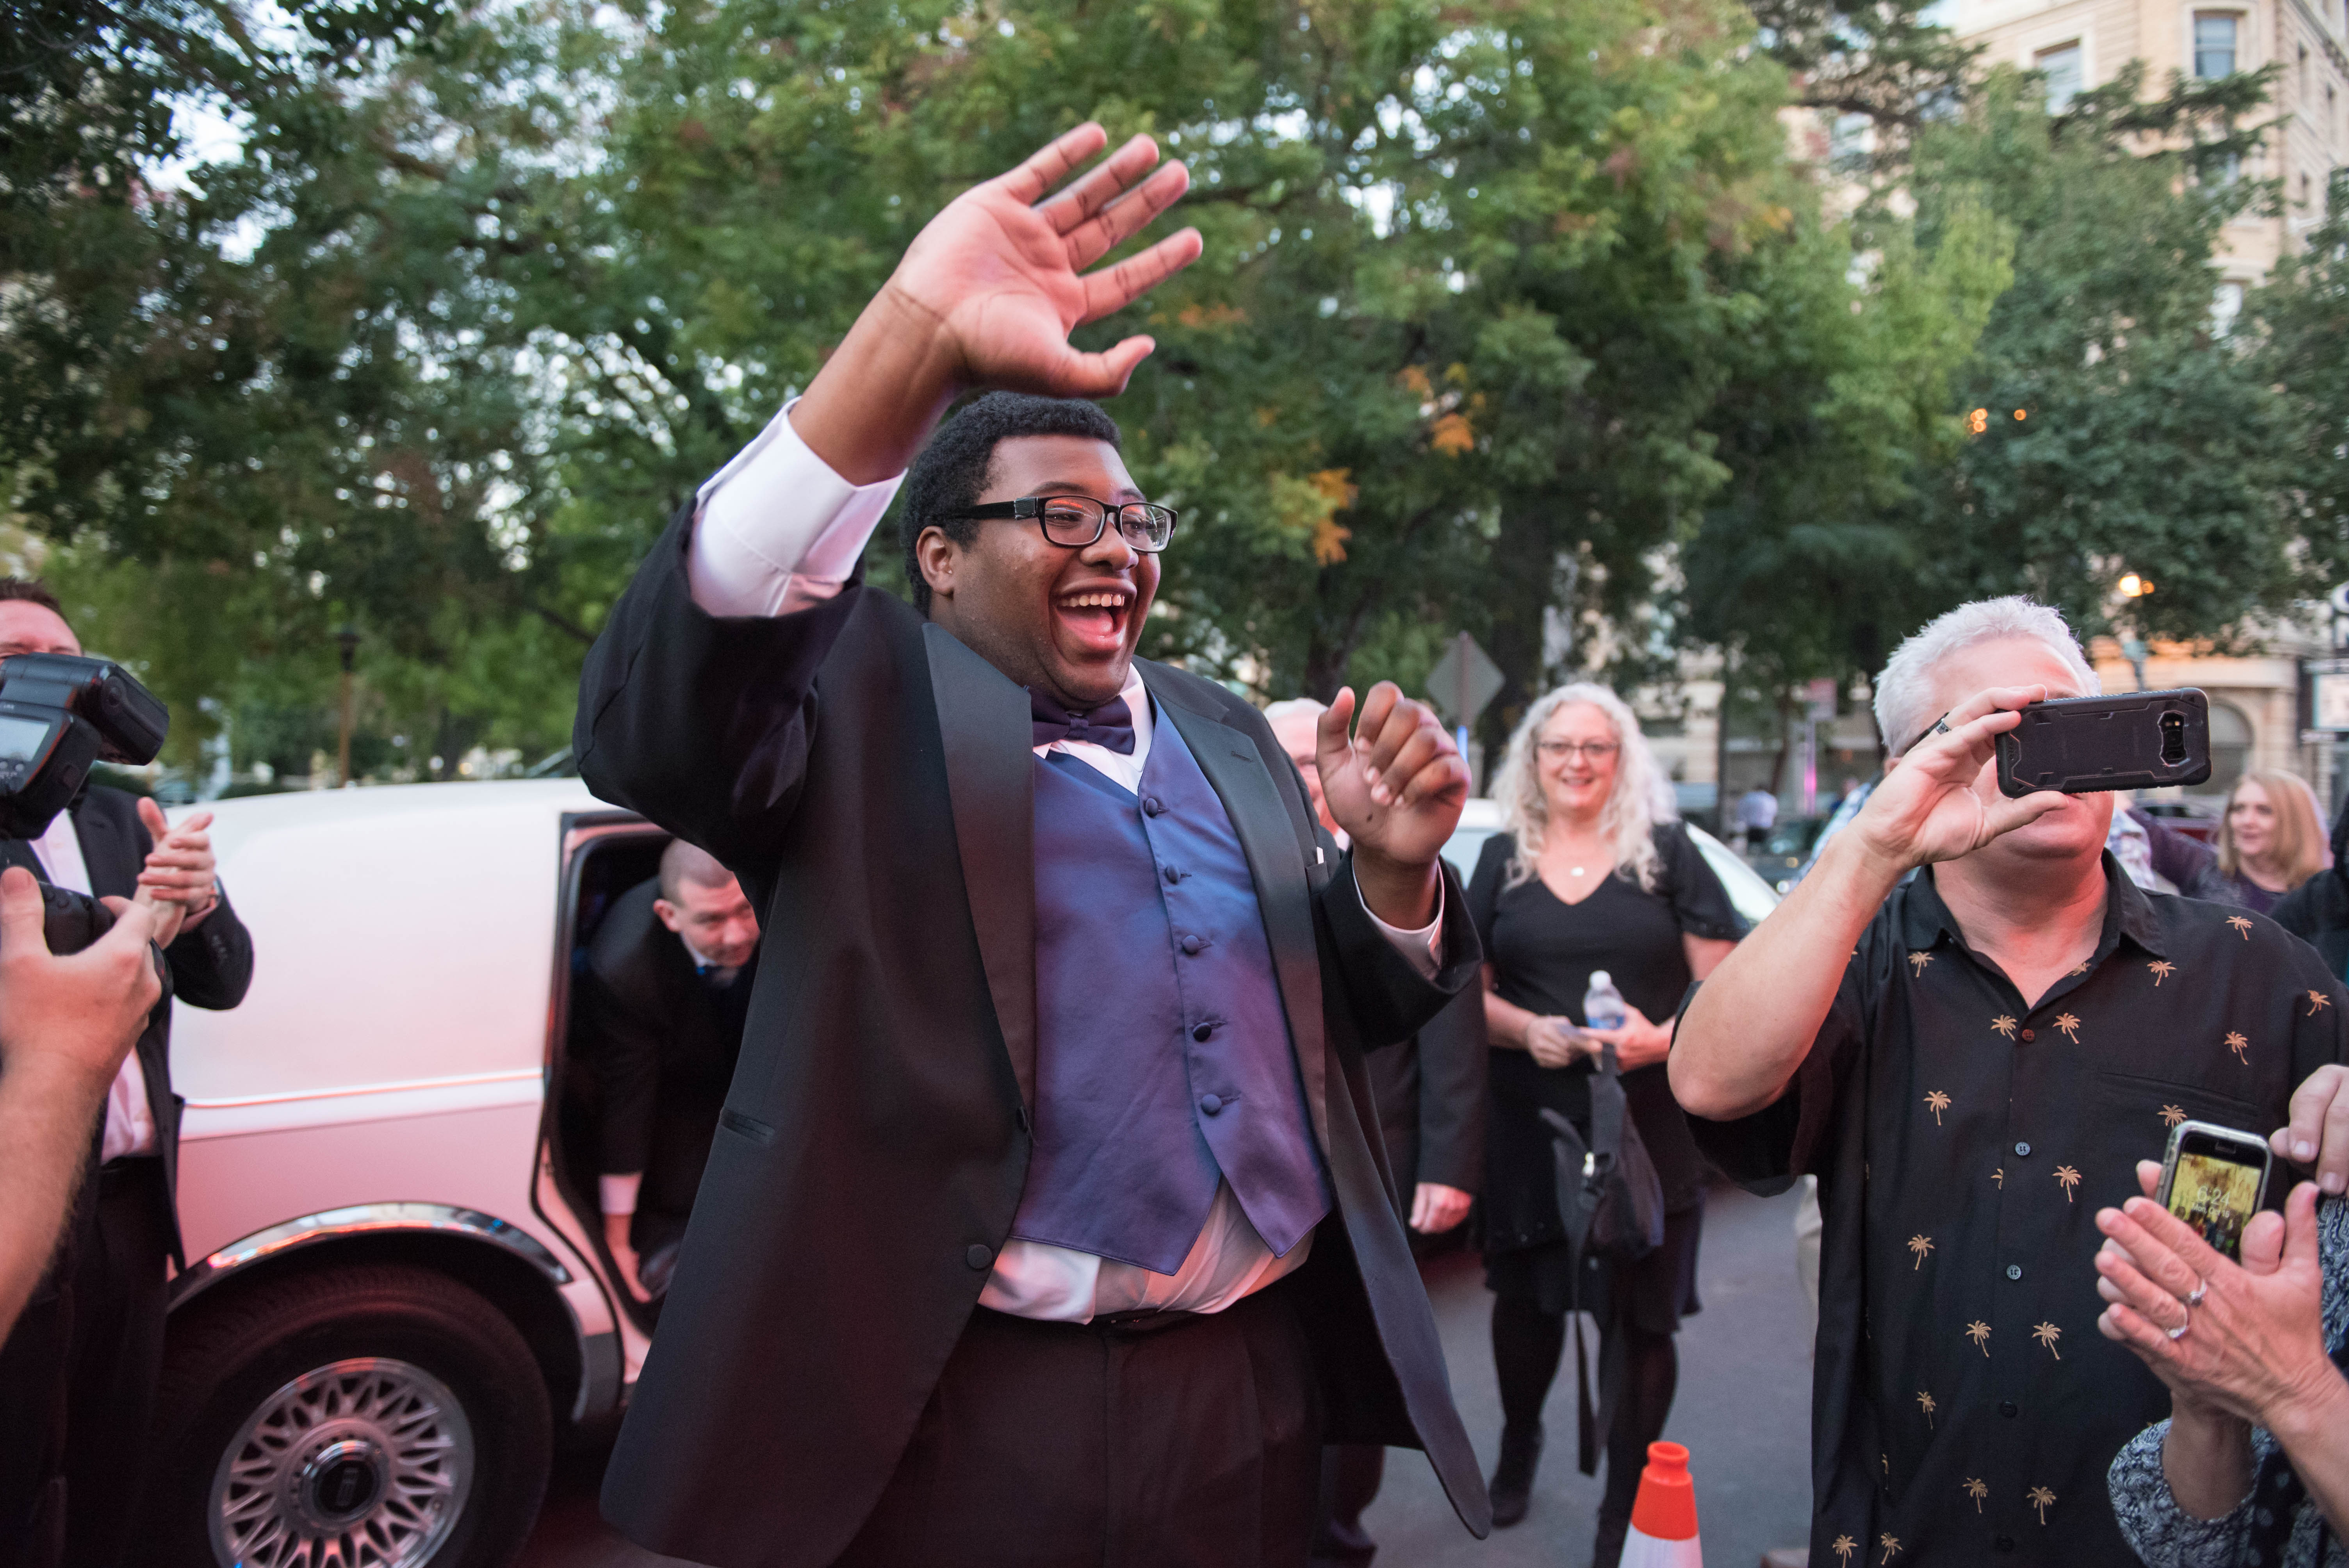 Young man wearing tuxedo steps out of limo on the red carpet smiling and waving